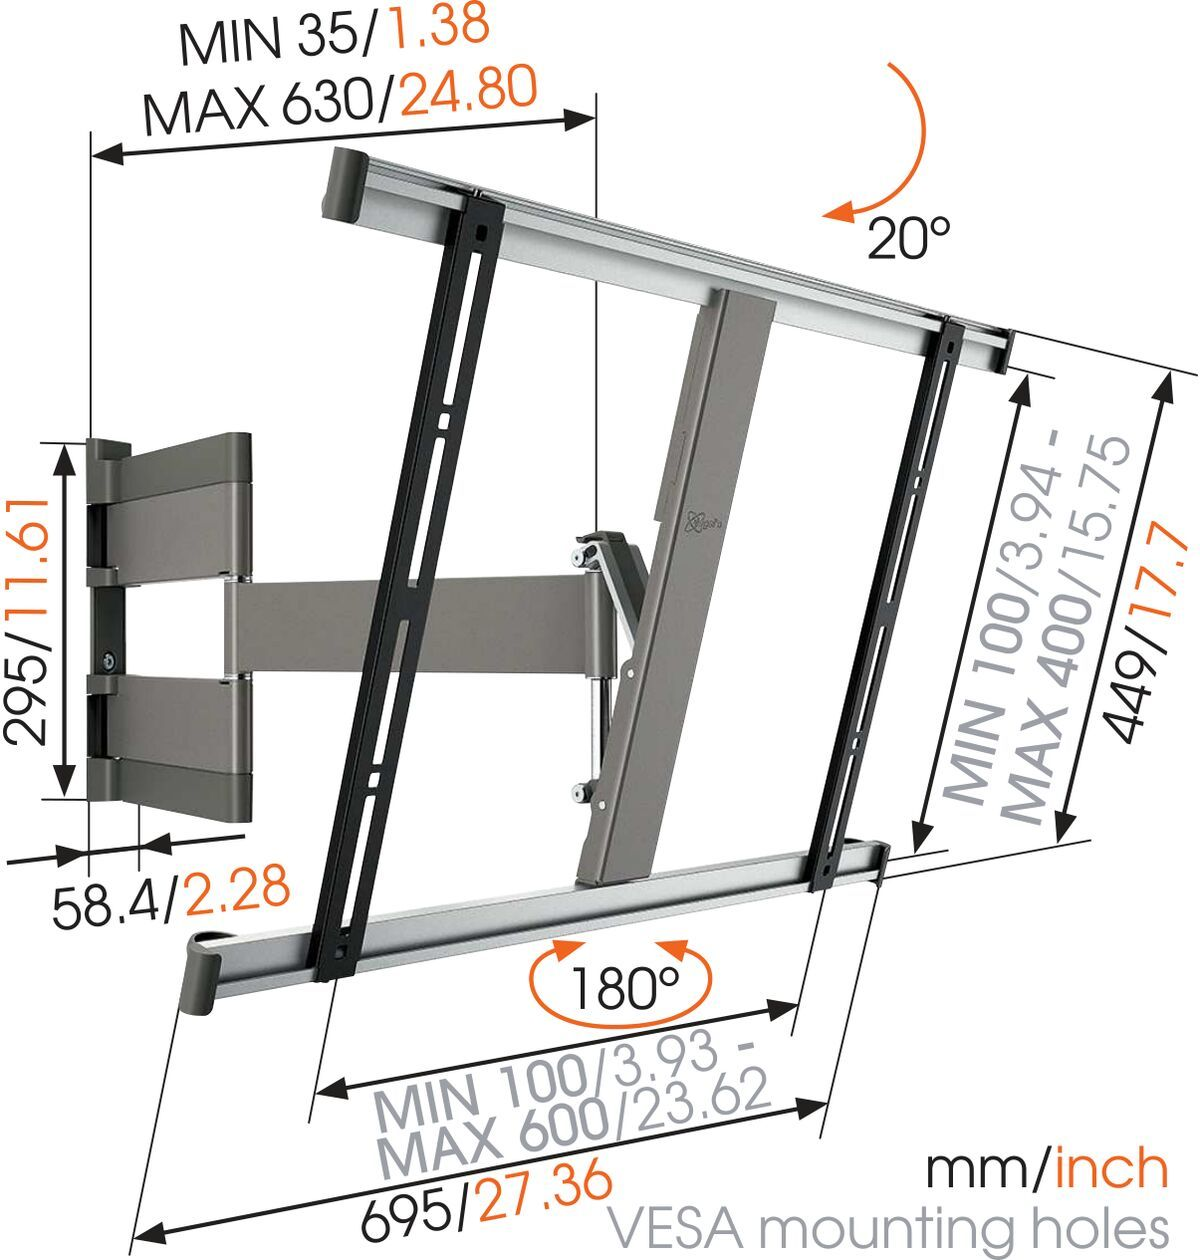 Vogel's THIN 345 UltraThin Full-Motion TV Wall Mount - Suitable for Full motion (up to 180°) - Suitable for Tilt up to 20° - Suitable for Dimensions